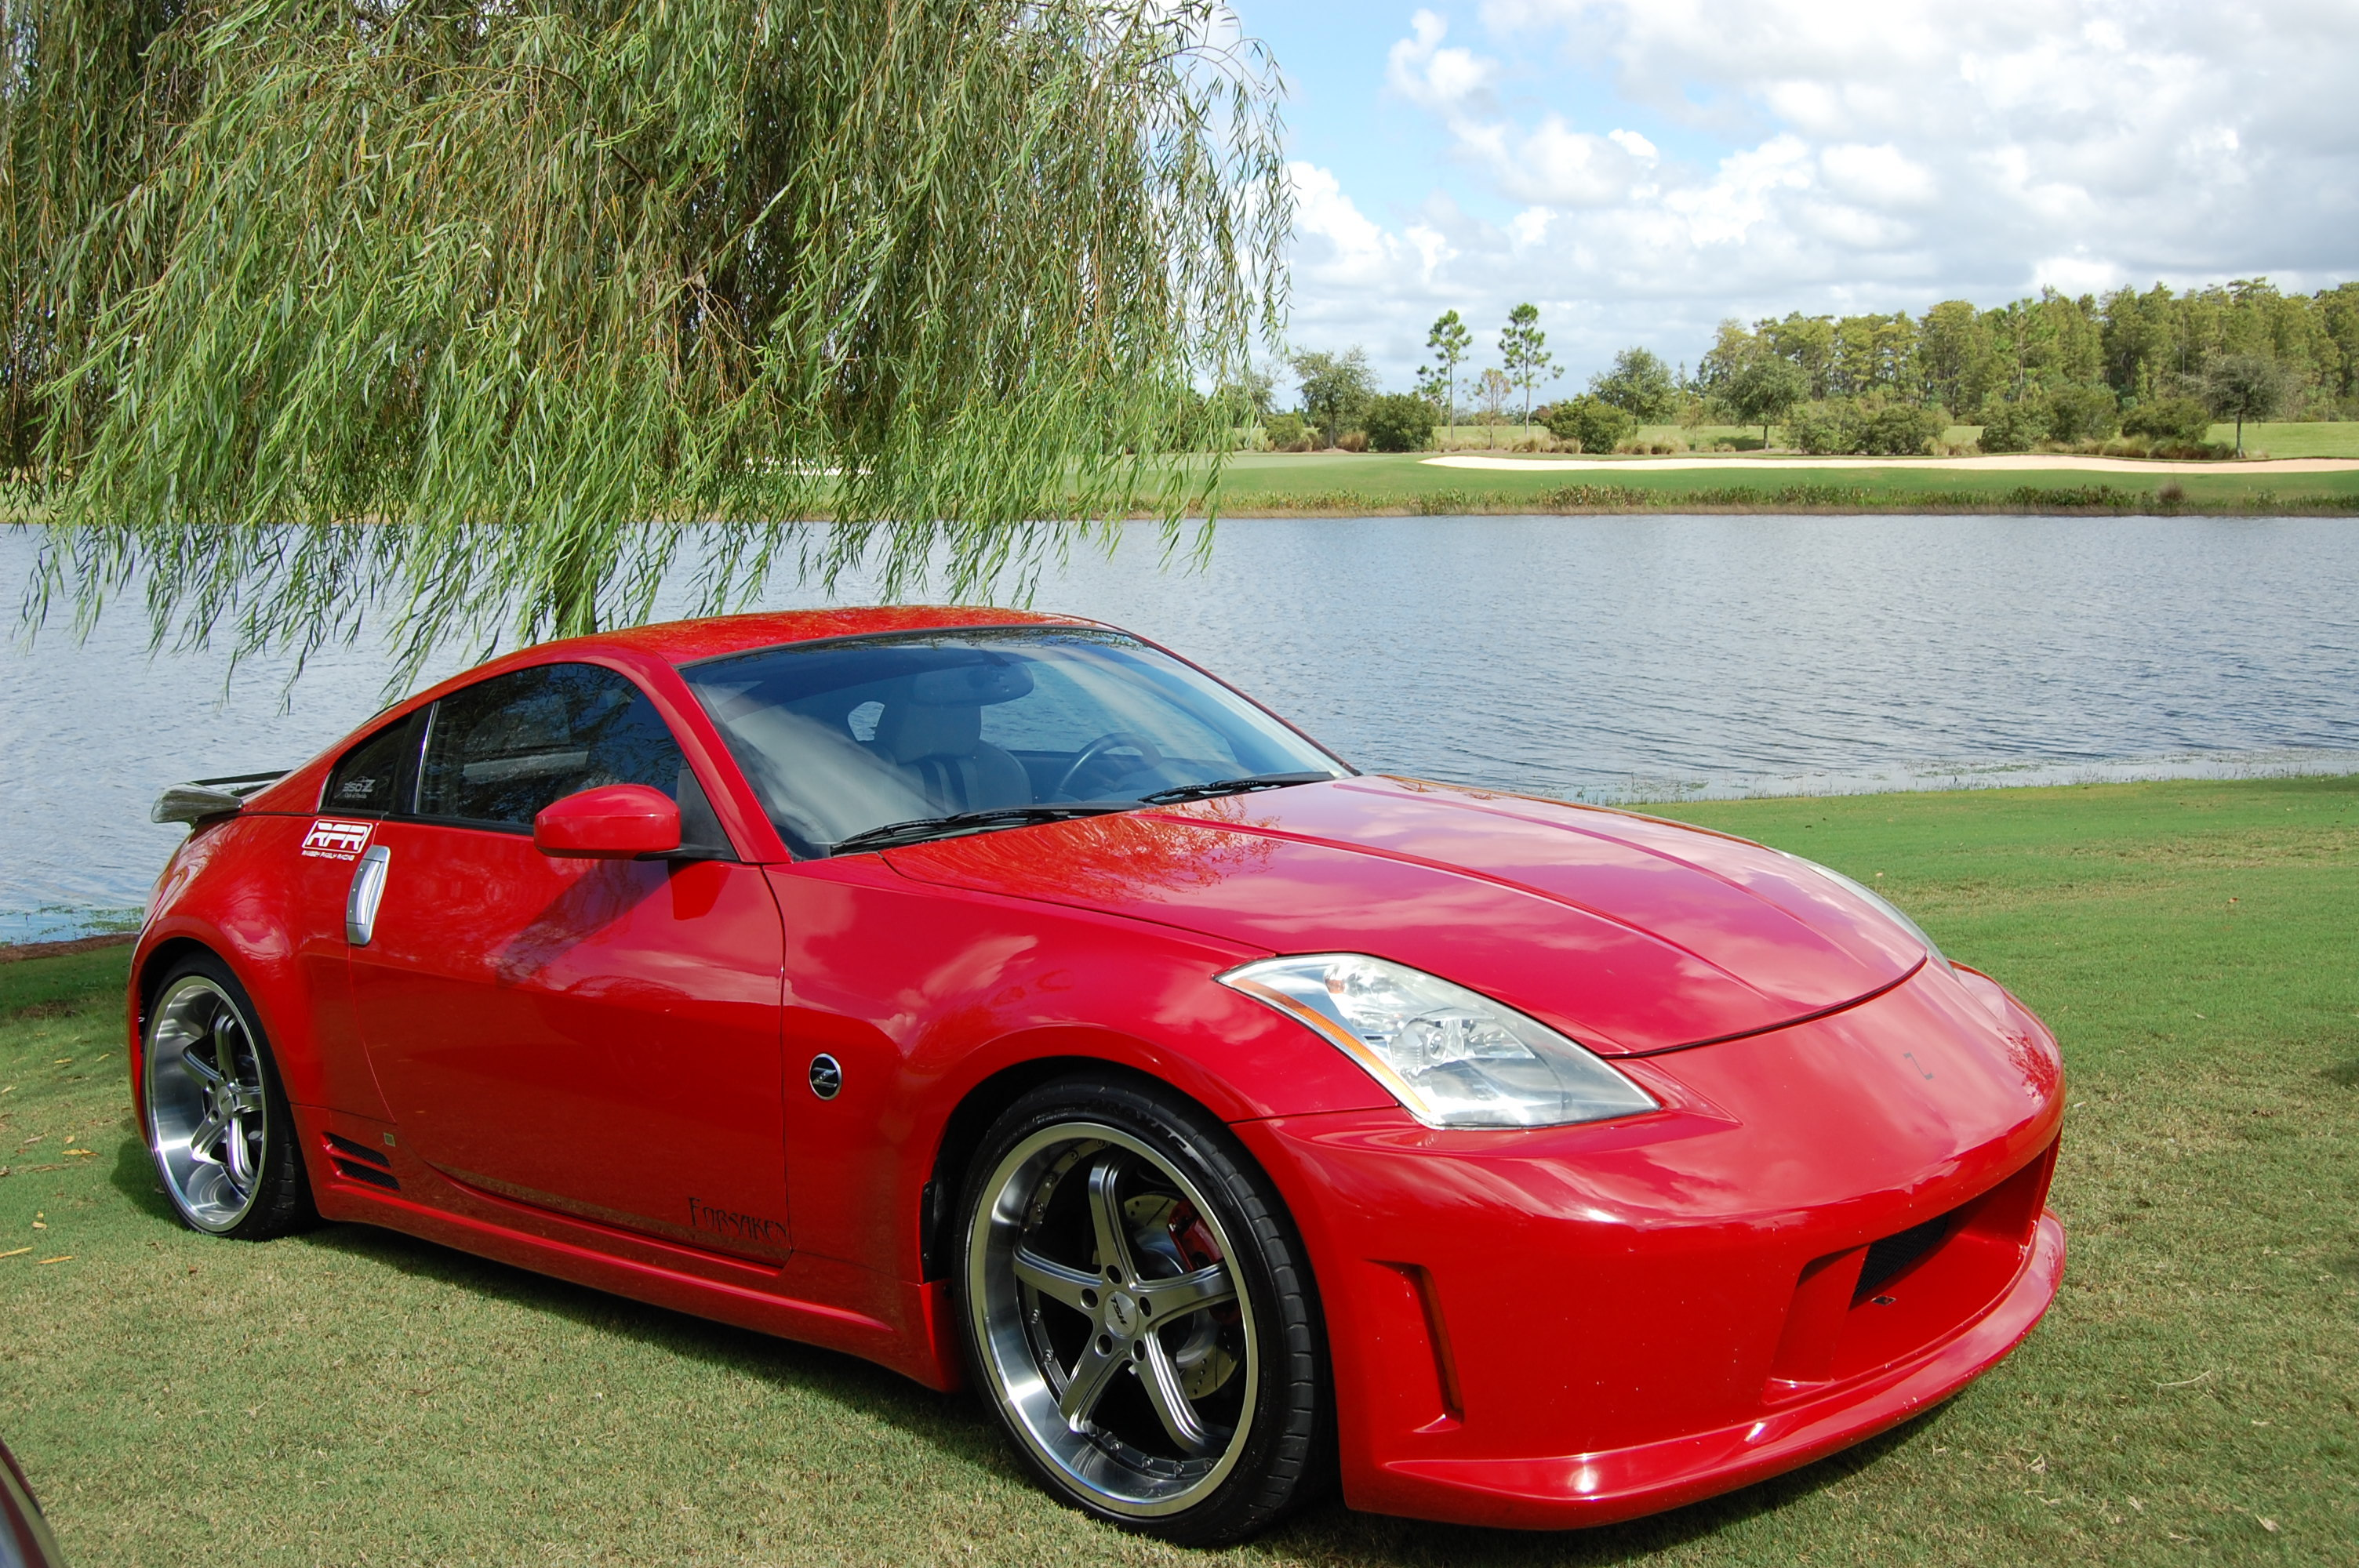 darksidemxer 2003 nissan 350z specs photos modification. Black Bedroom Furniture Sets. Home Design Ideas